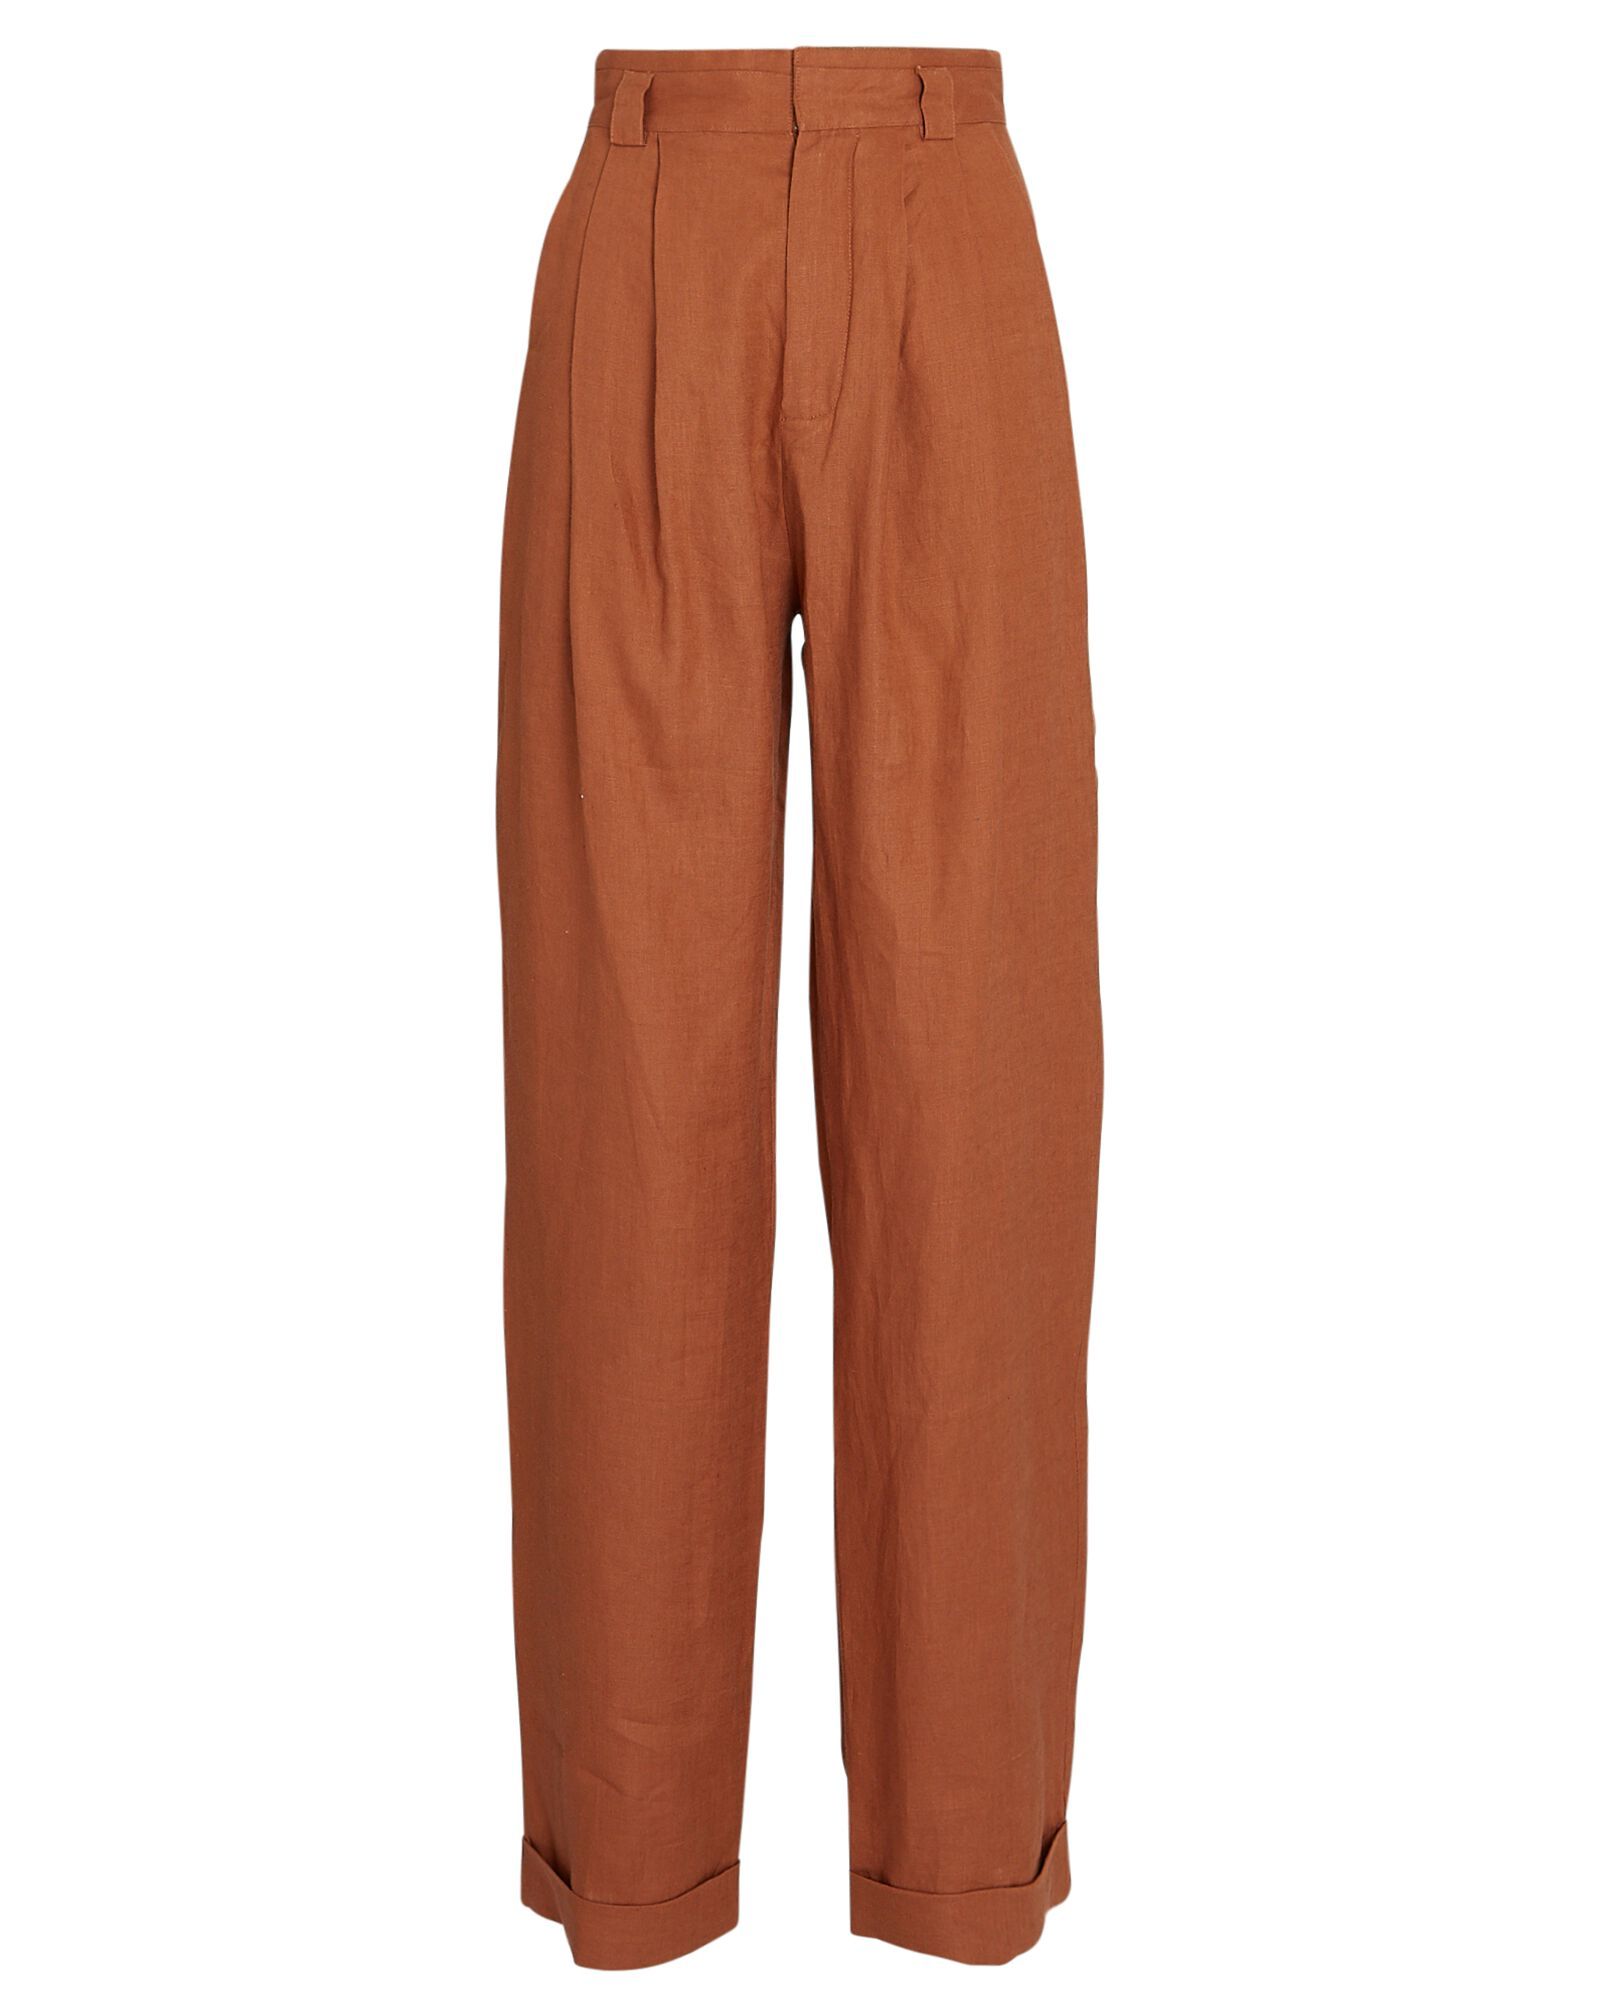 Ginevra Pleated Linen Pants, BROWN, hi-res